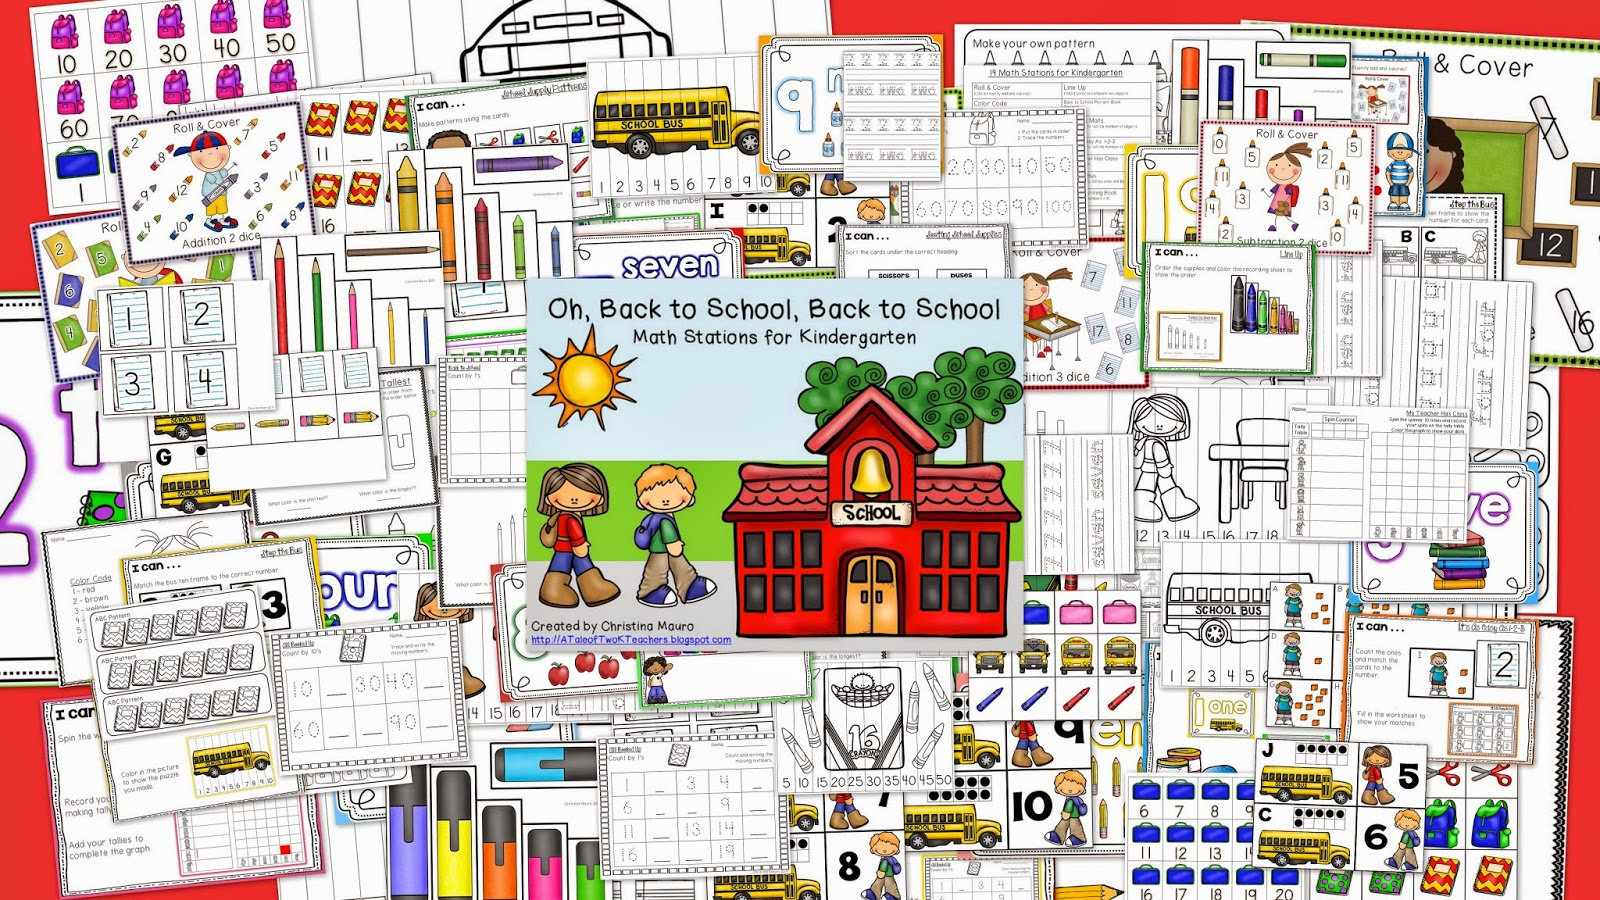 http://www.teacherspayteachers.com/Product/Oh-Back-to-School-Back-to-School-Math-Stations-for-Kindergarten-714079